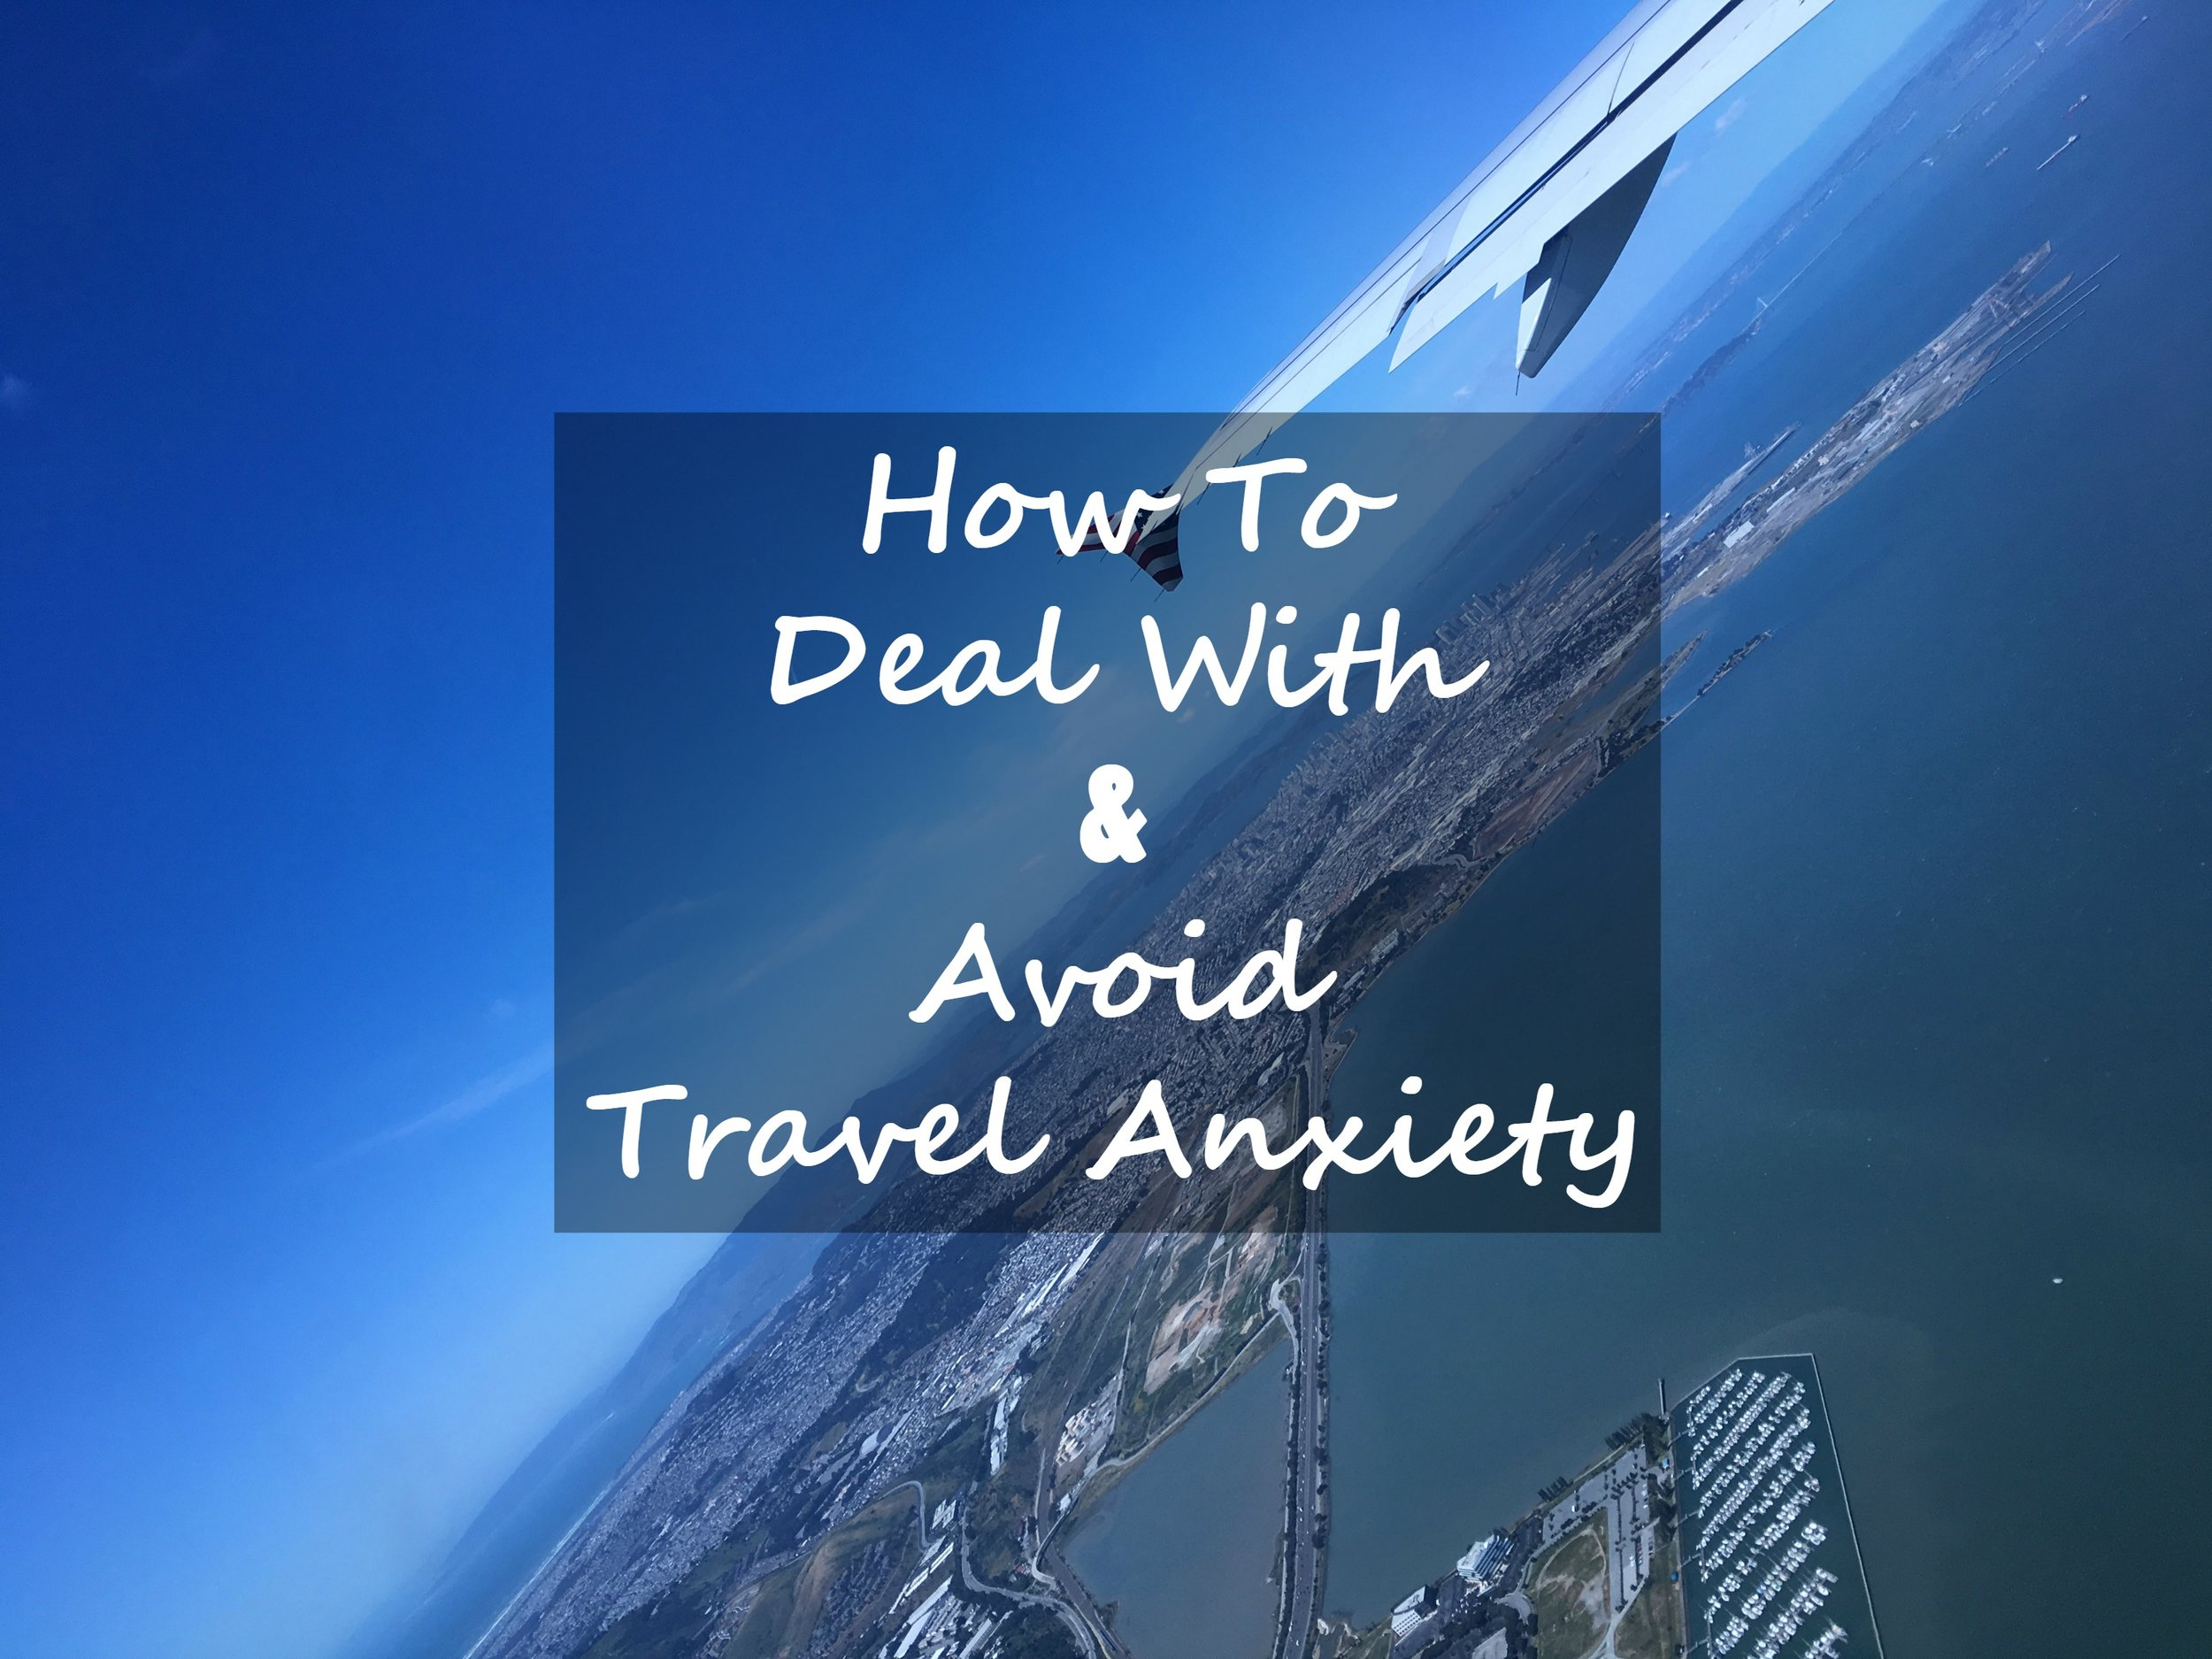 how to deal with travel anxiety.jpg